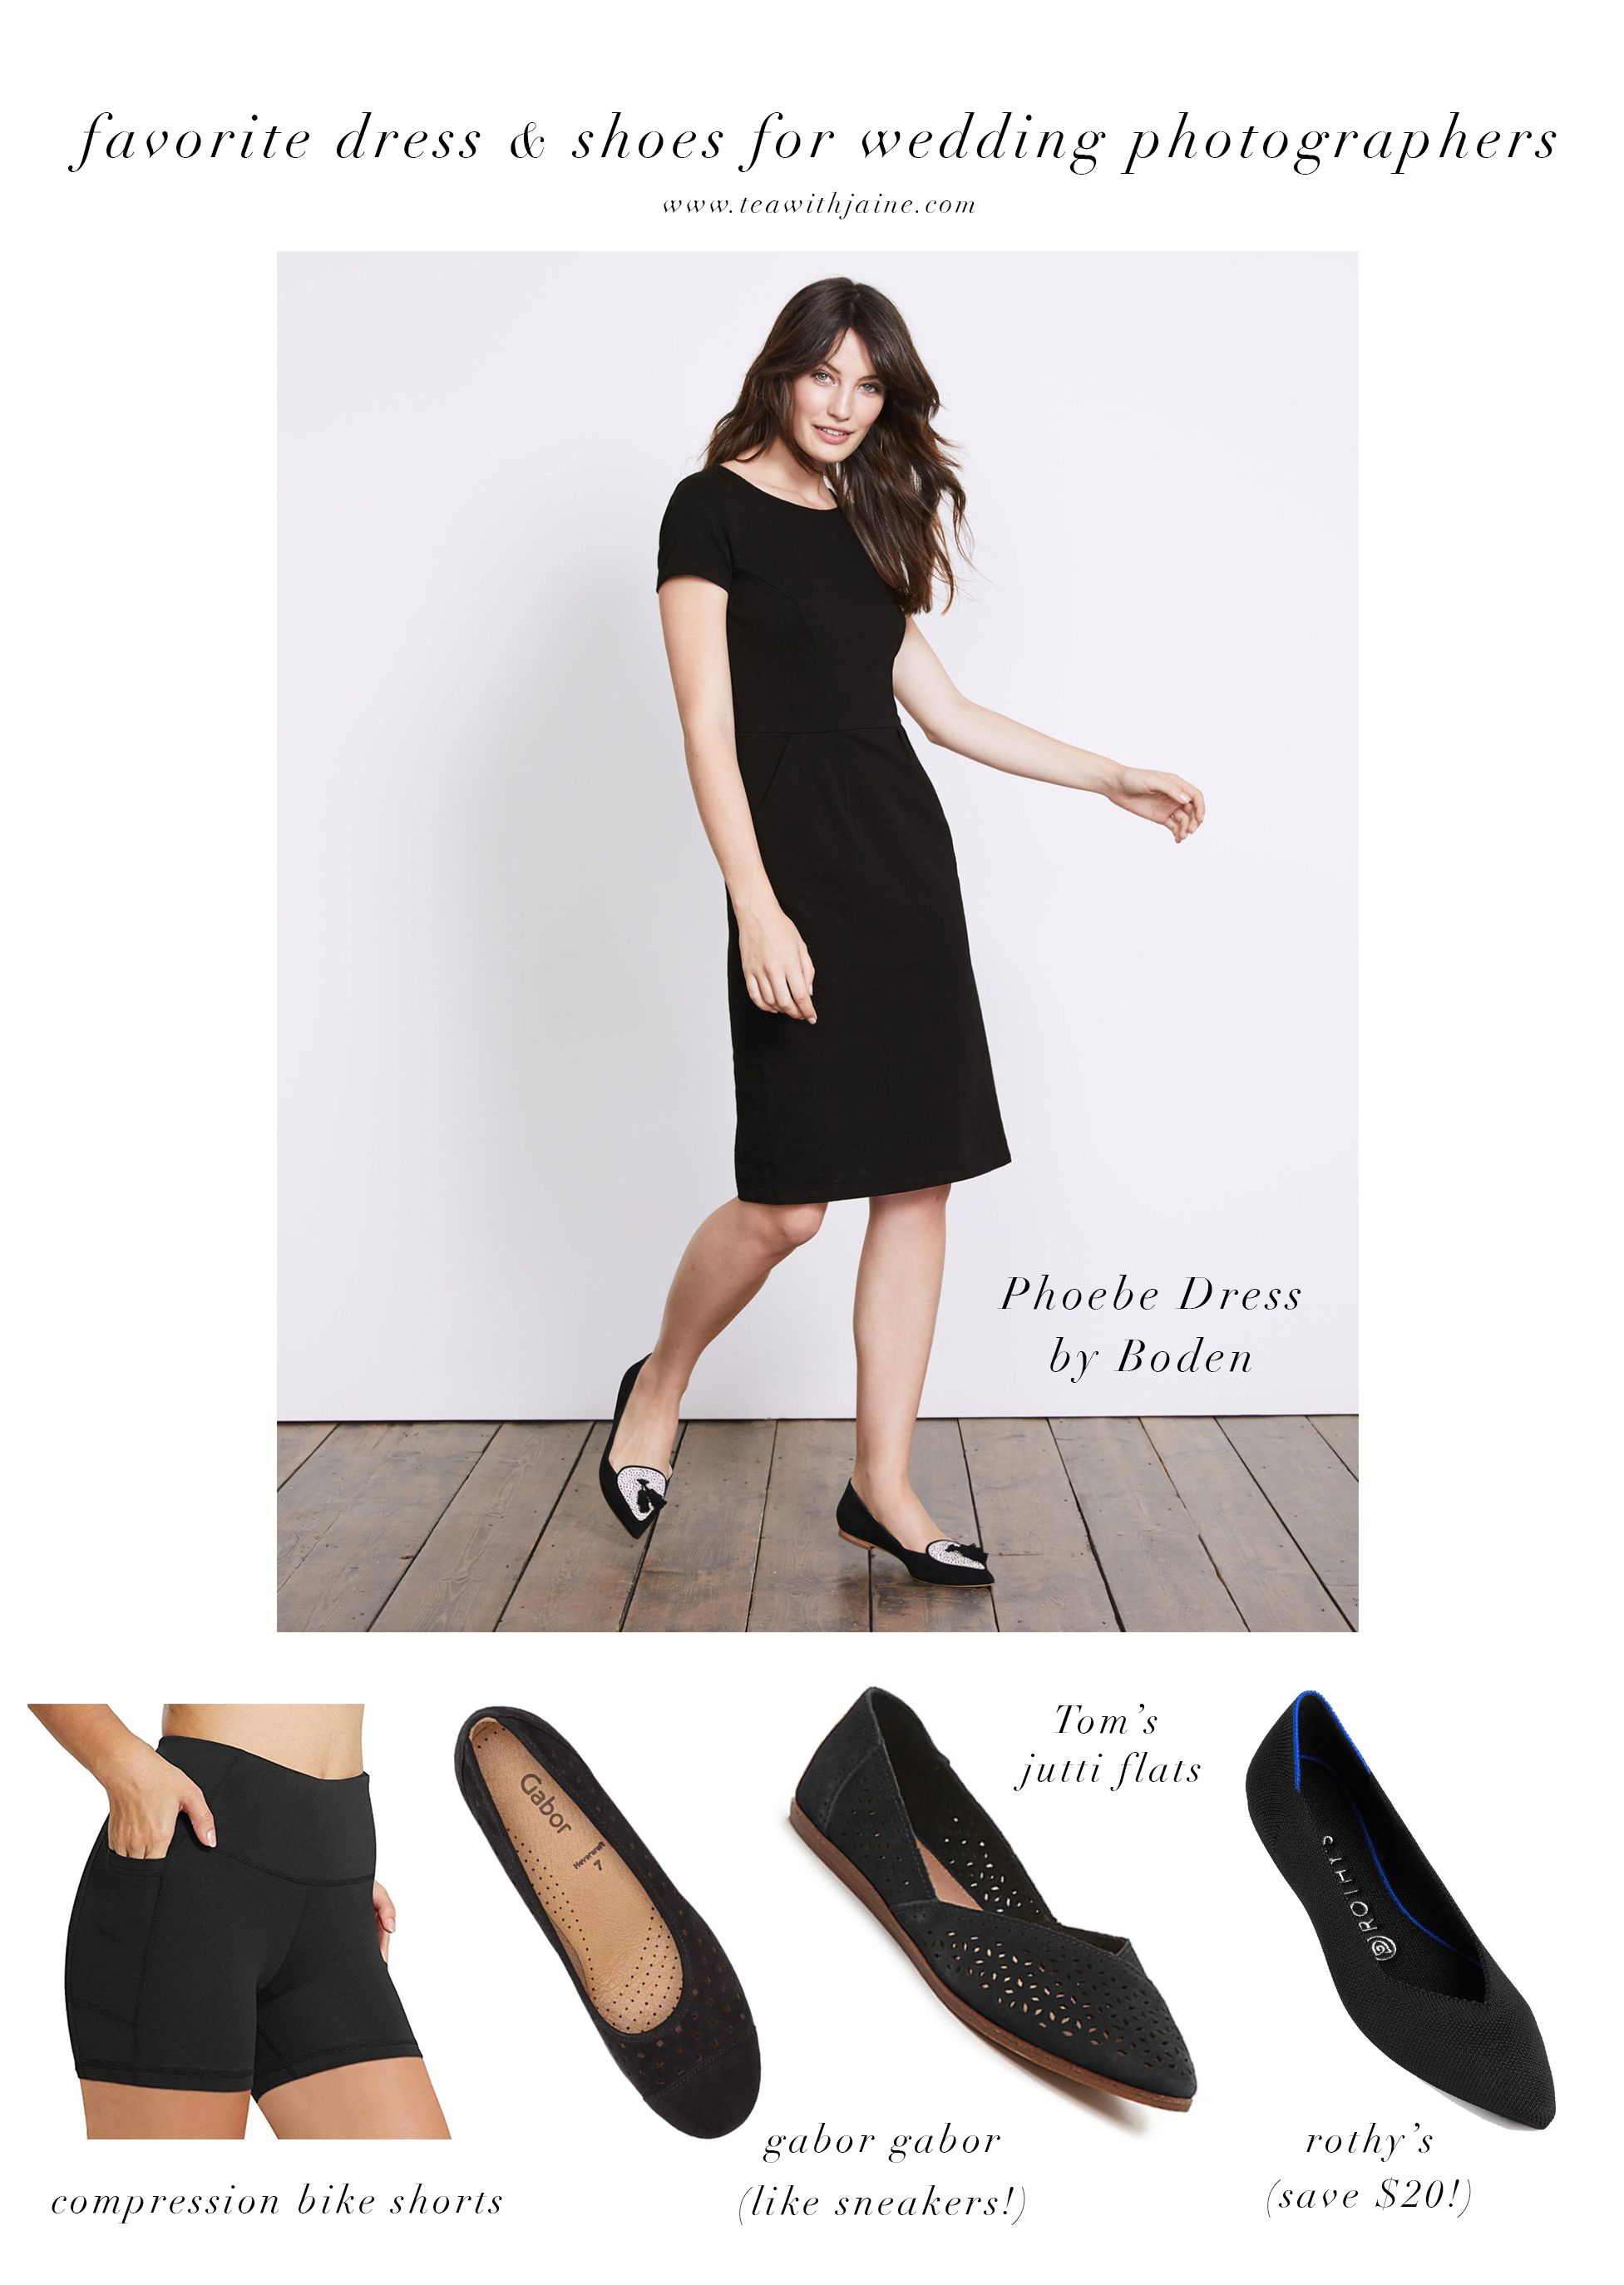 Best Dress And Shoes For Wedding Photographers Little Black Dress With Pockets Comfortable Black Shoes Nice Dresses Black Dress With Pockets Best Dress Shoes [ 2748 x 1953 Pixel ]